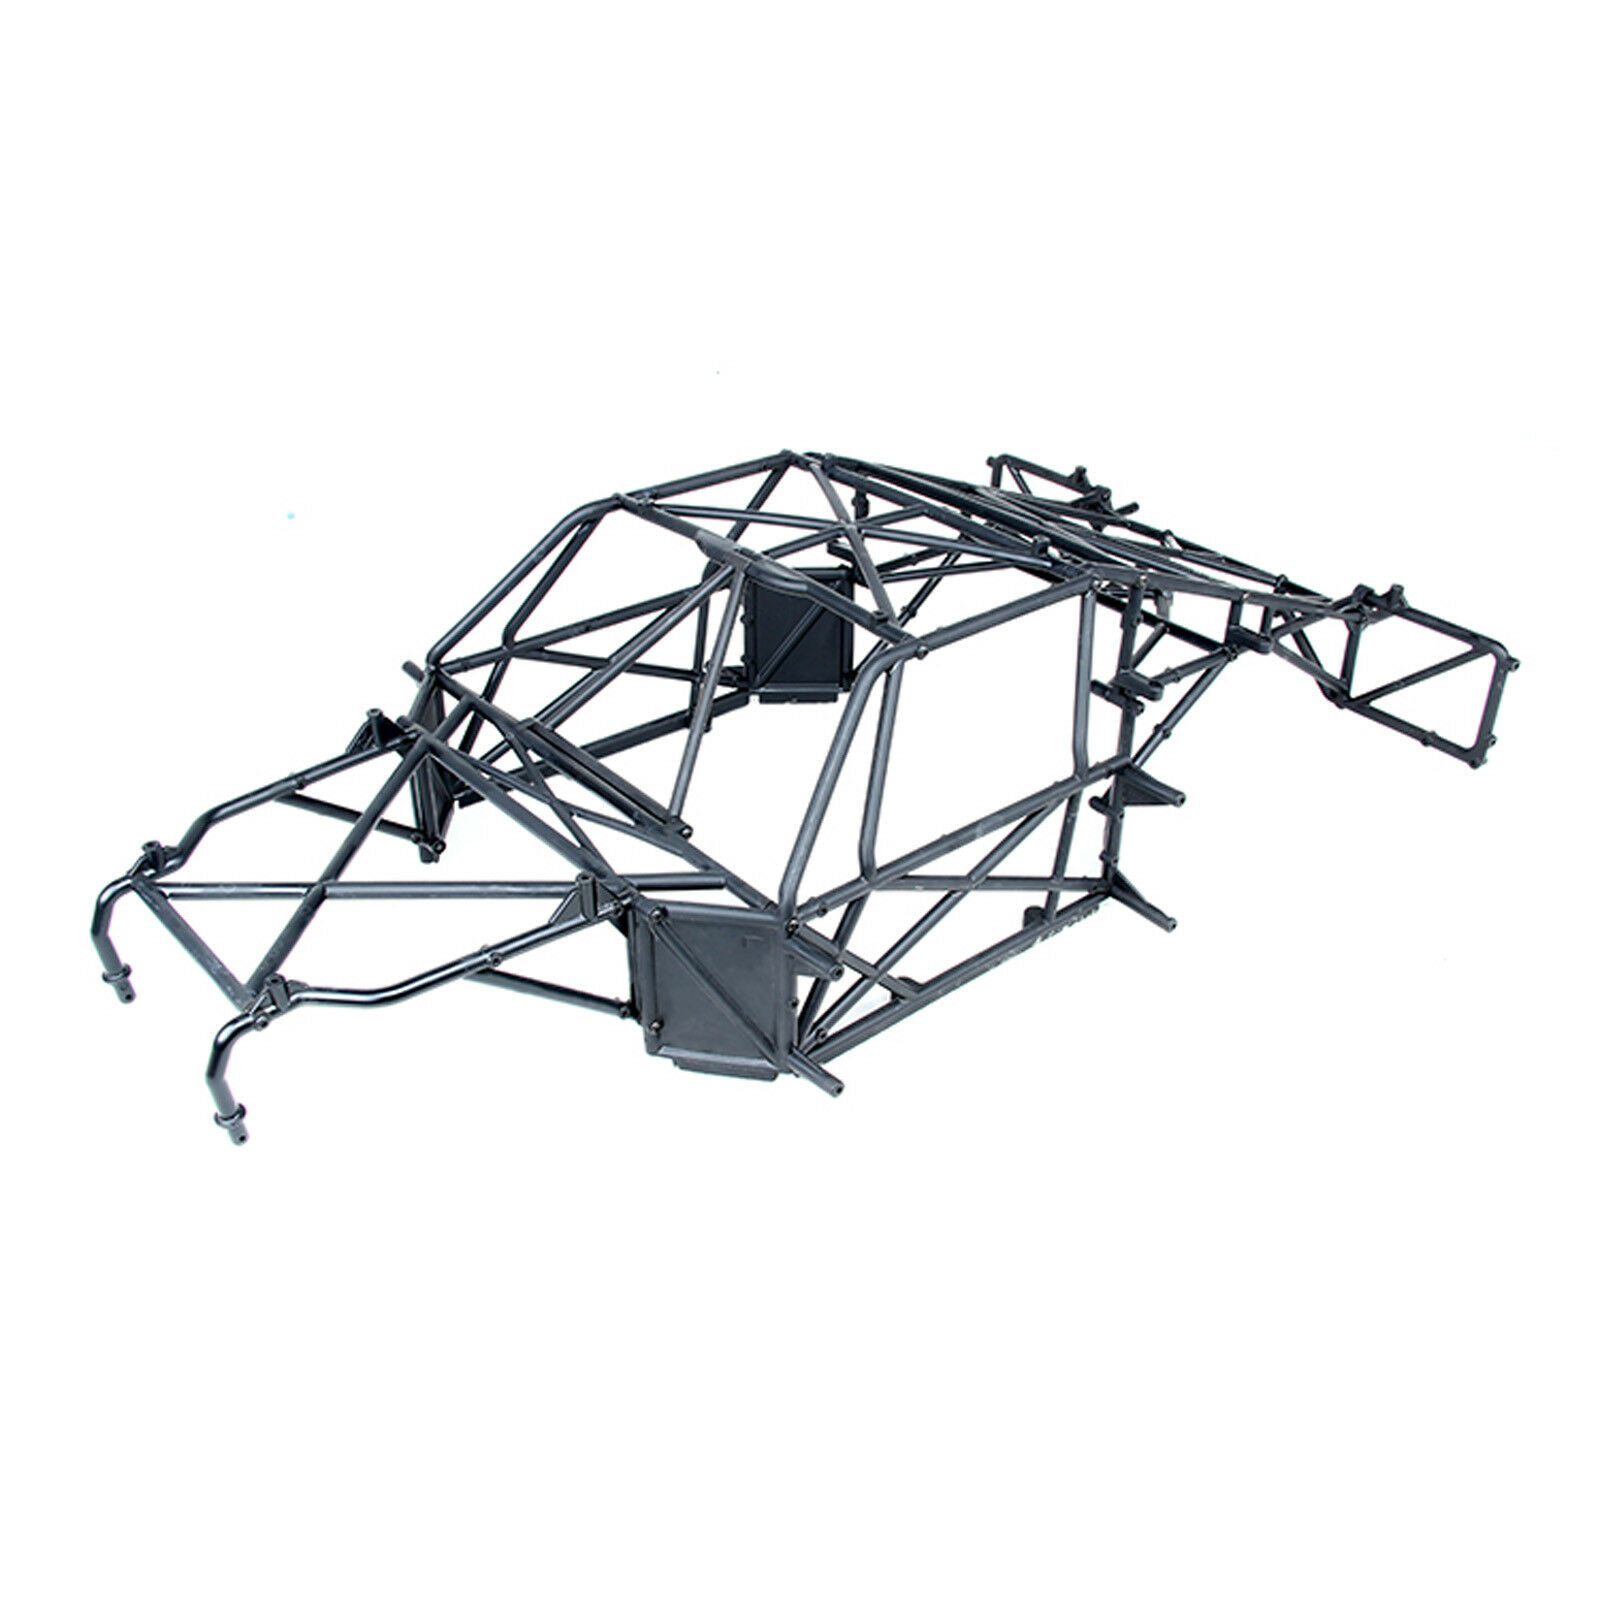 Plastic roll cage for losi 5IVE-T 5T RV LT X2